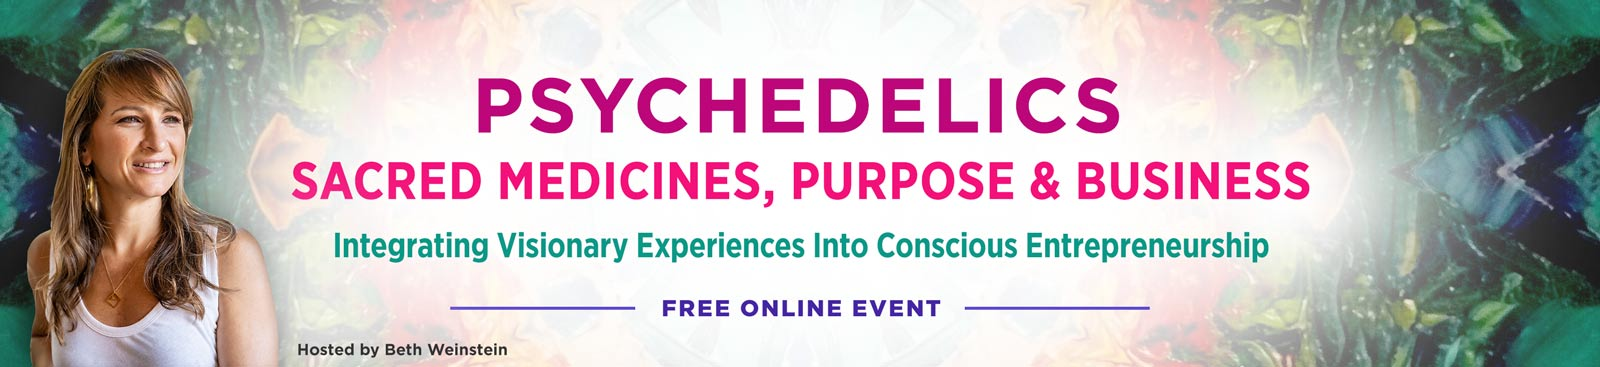 Psychedelics, Sacred Medicine & Purpose: Integrating Visionary Experiences into Conscious Entrepreneurship